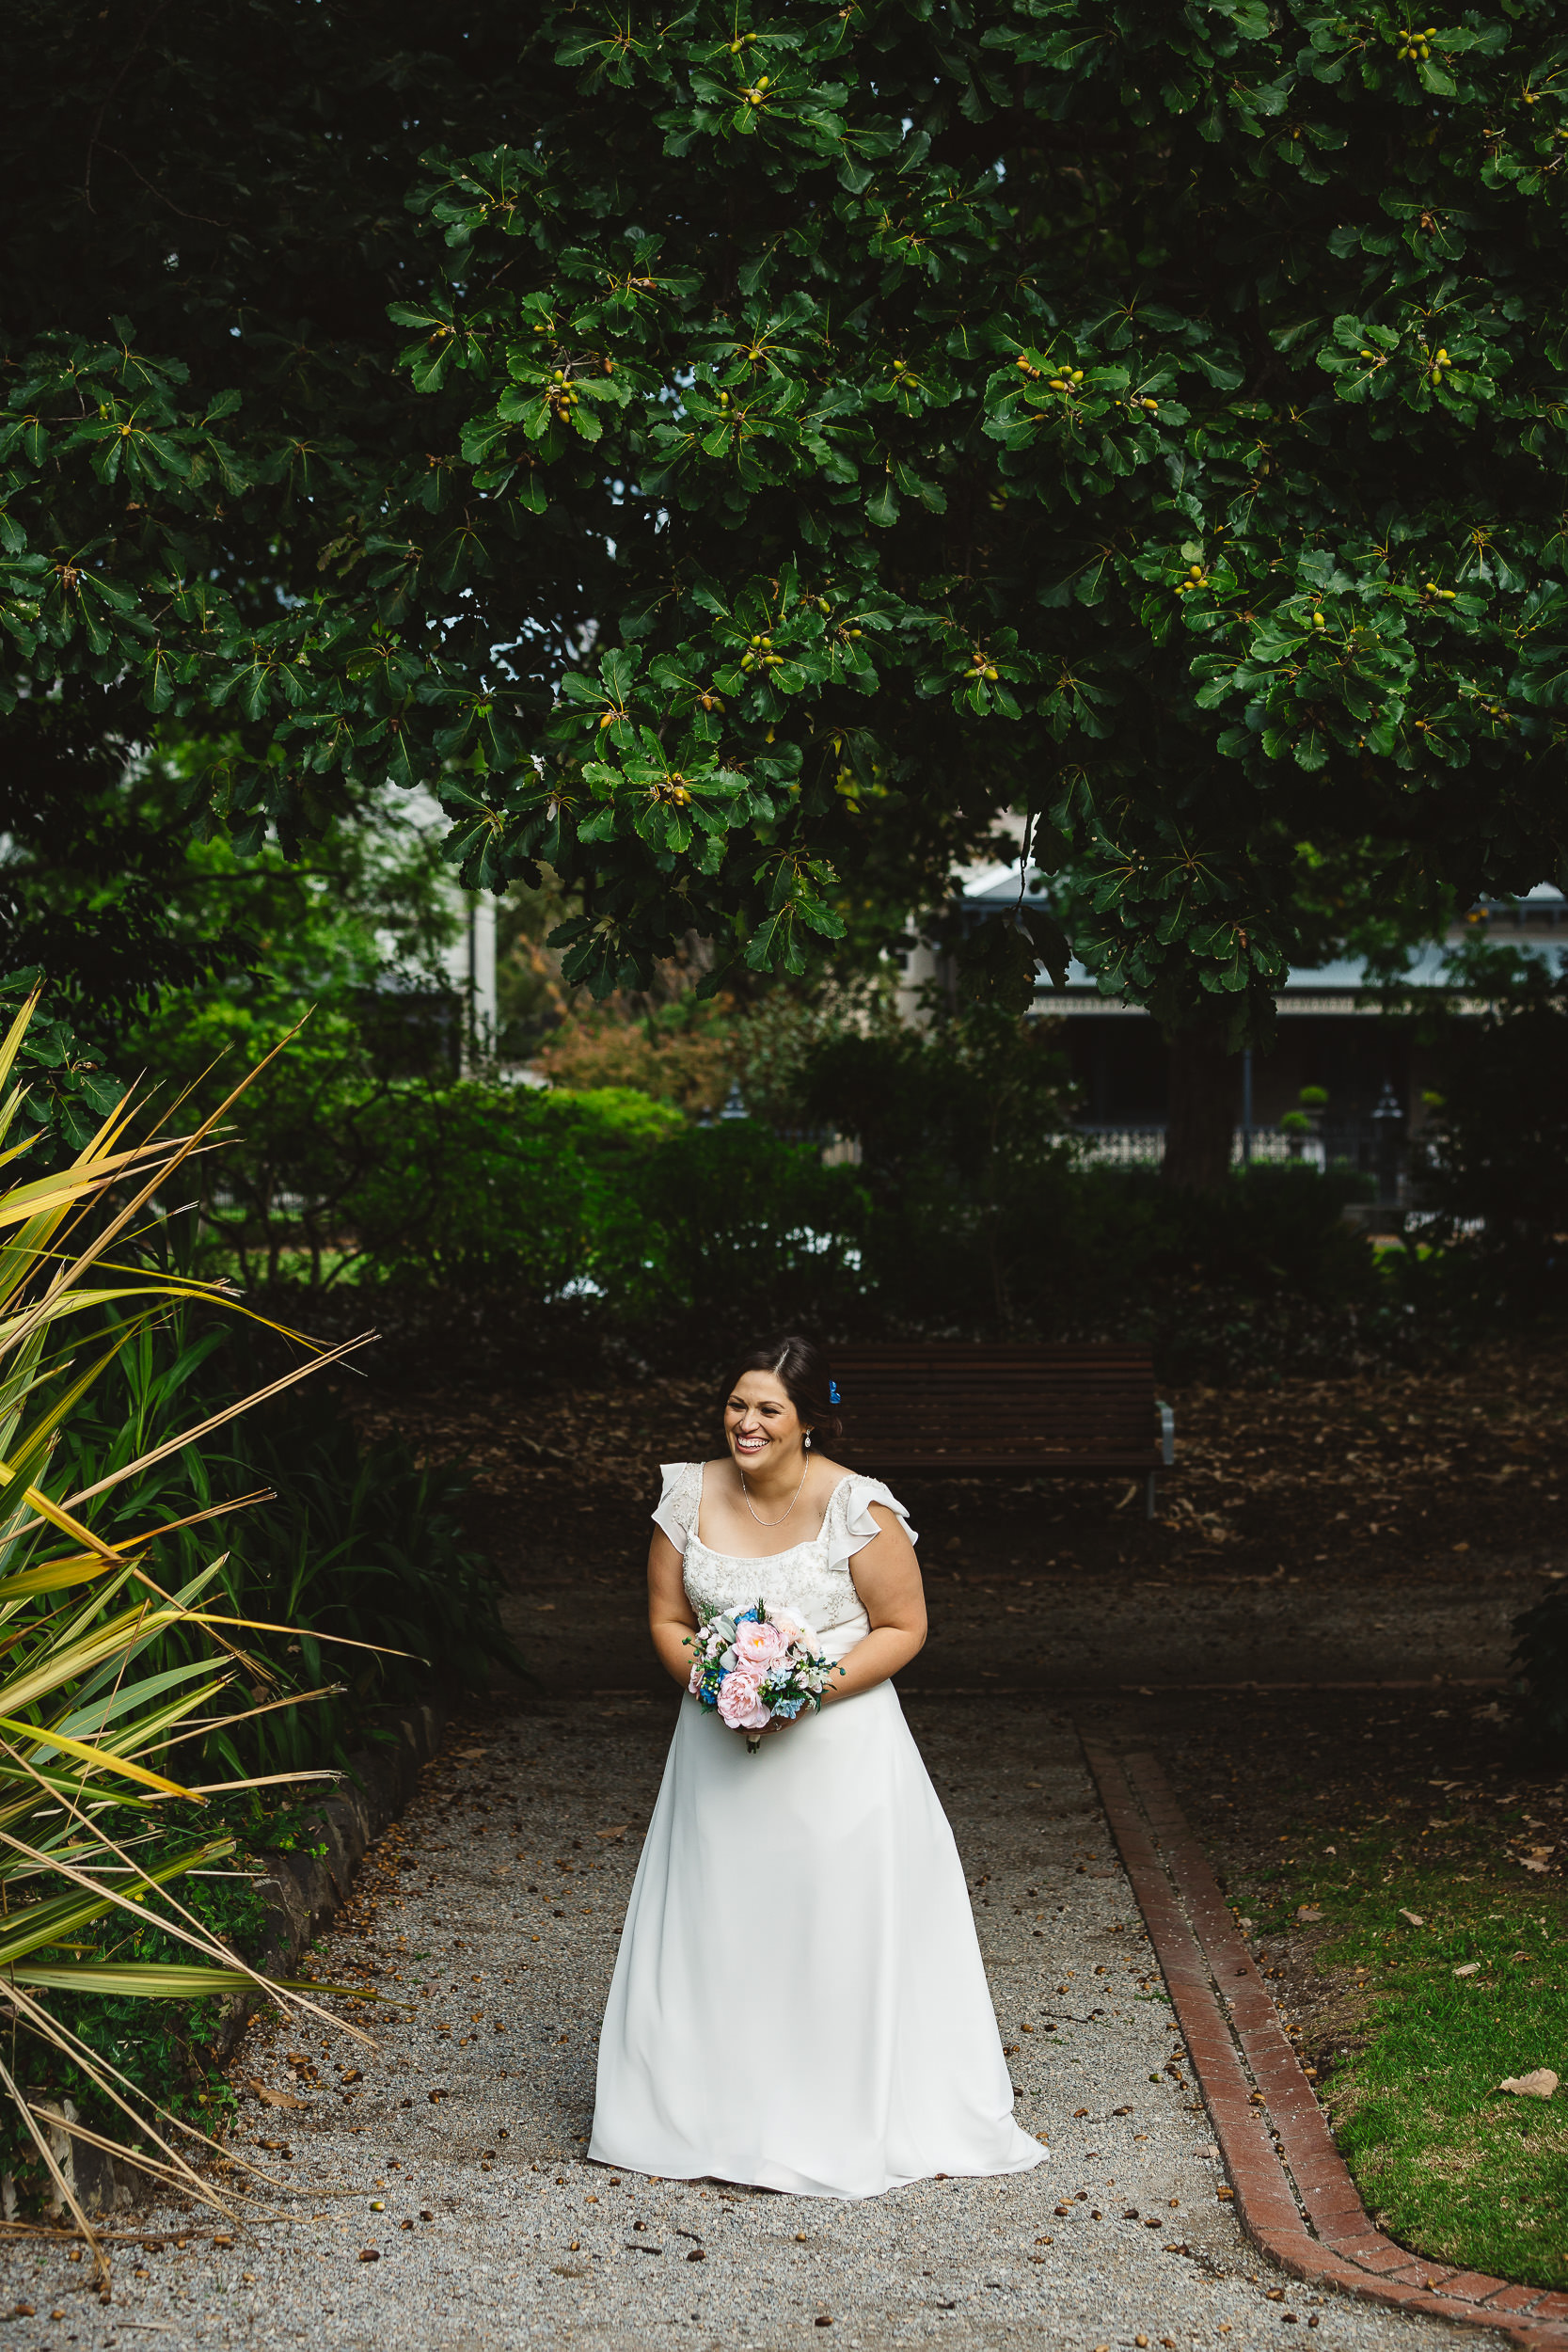 Melbourne-Wedding-Photographer-1086.jpg